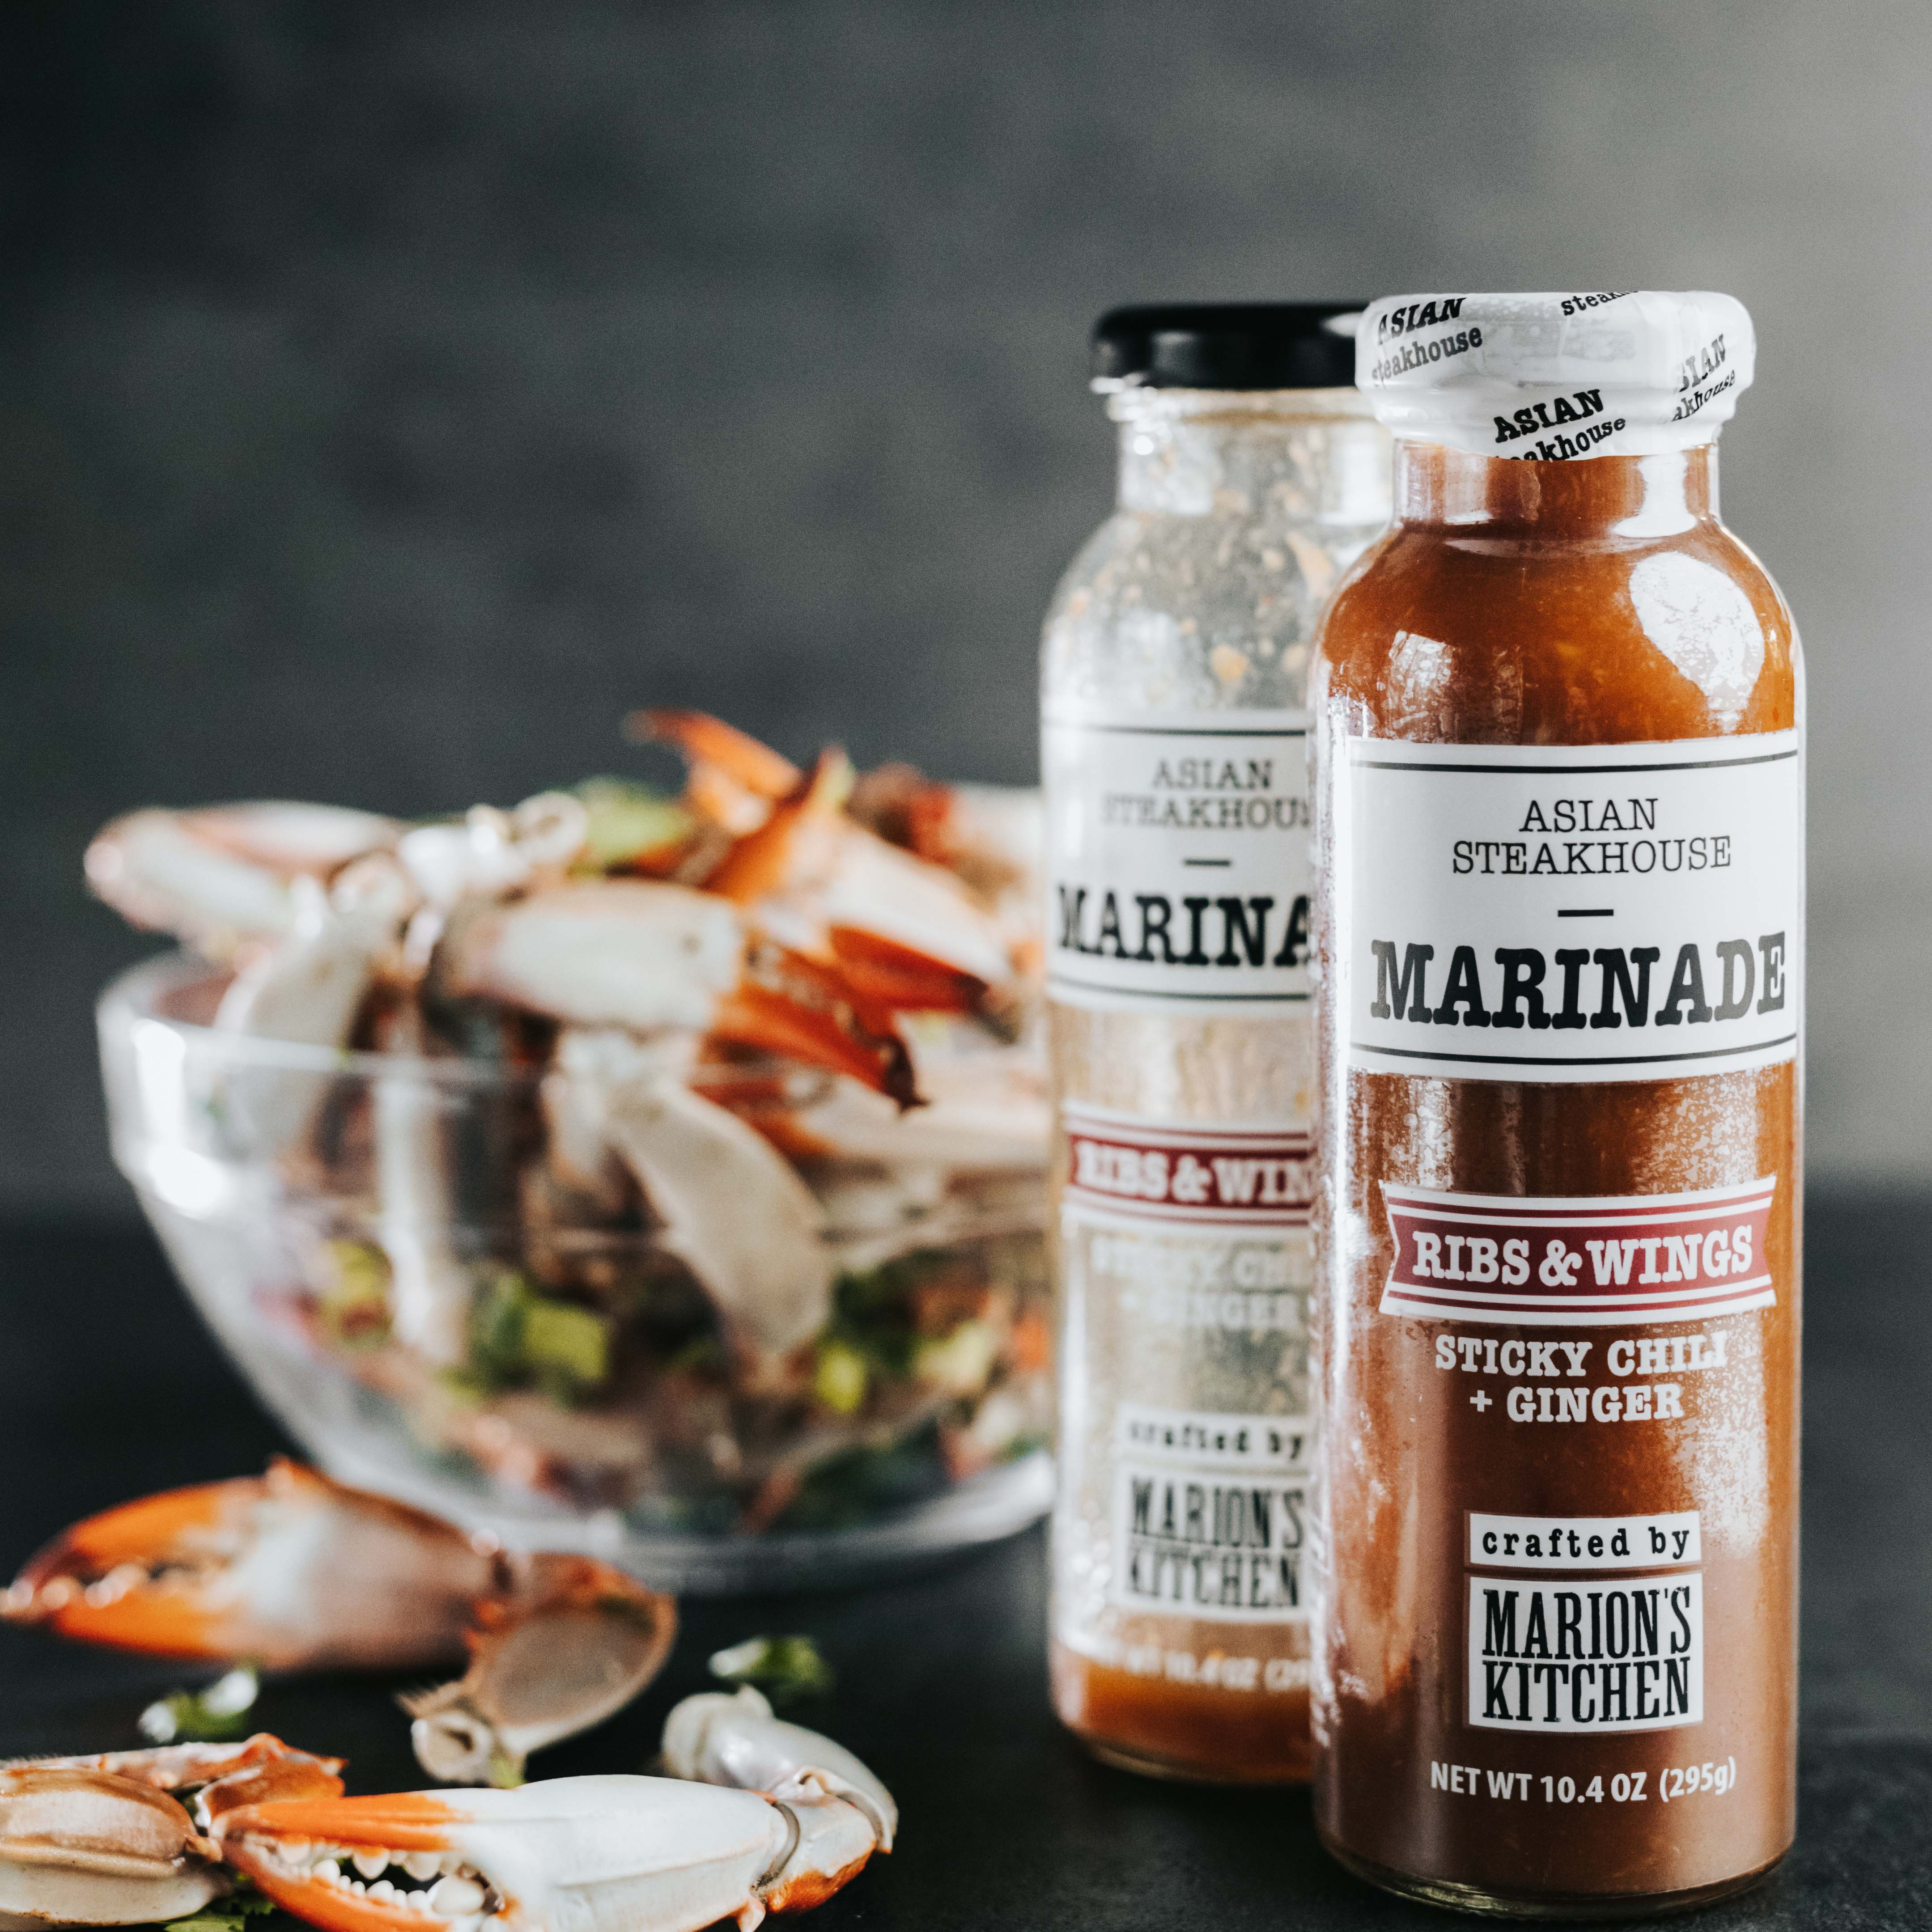 Recipe: Sauce up your crabs the easy way with Marion's Kitchen sauce